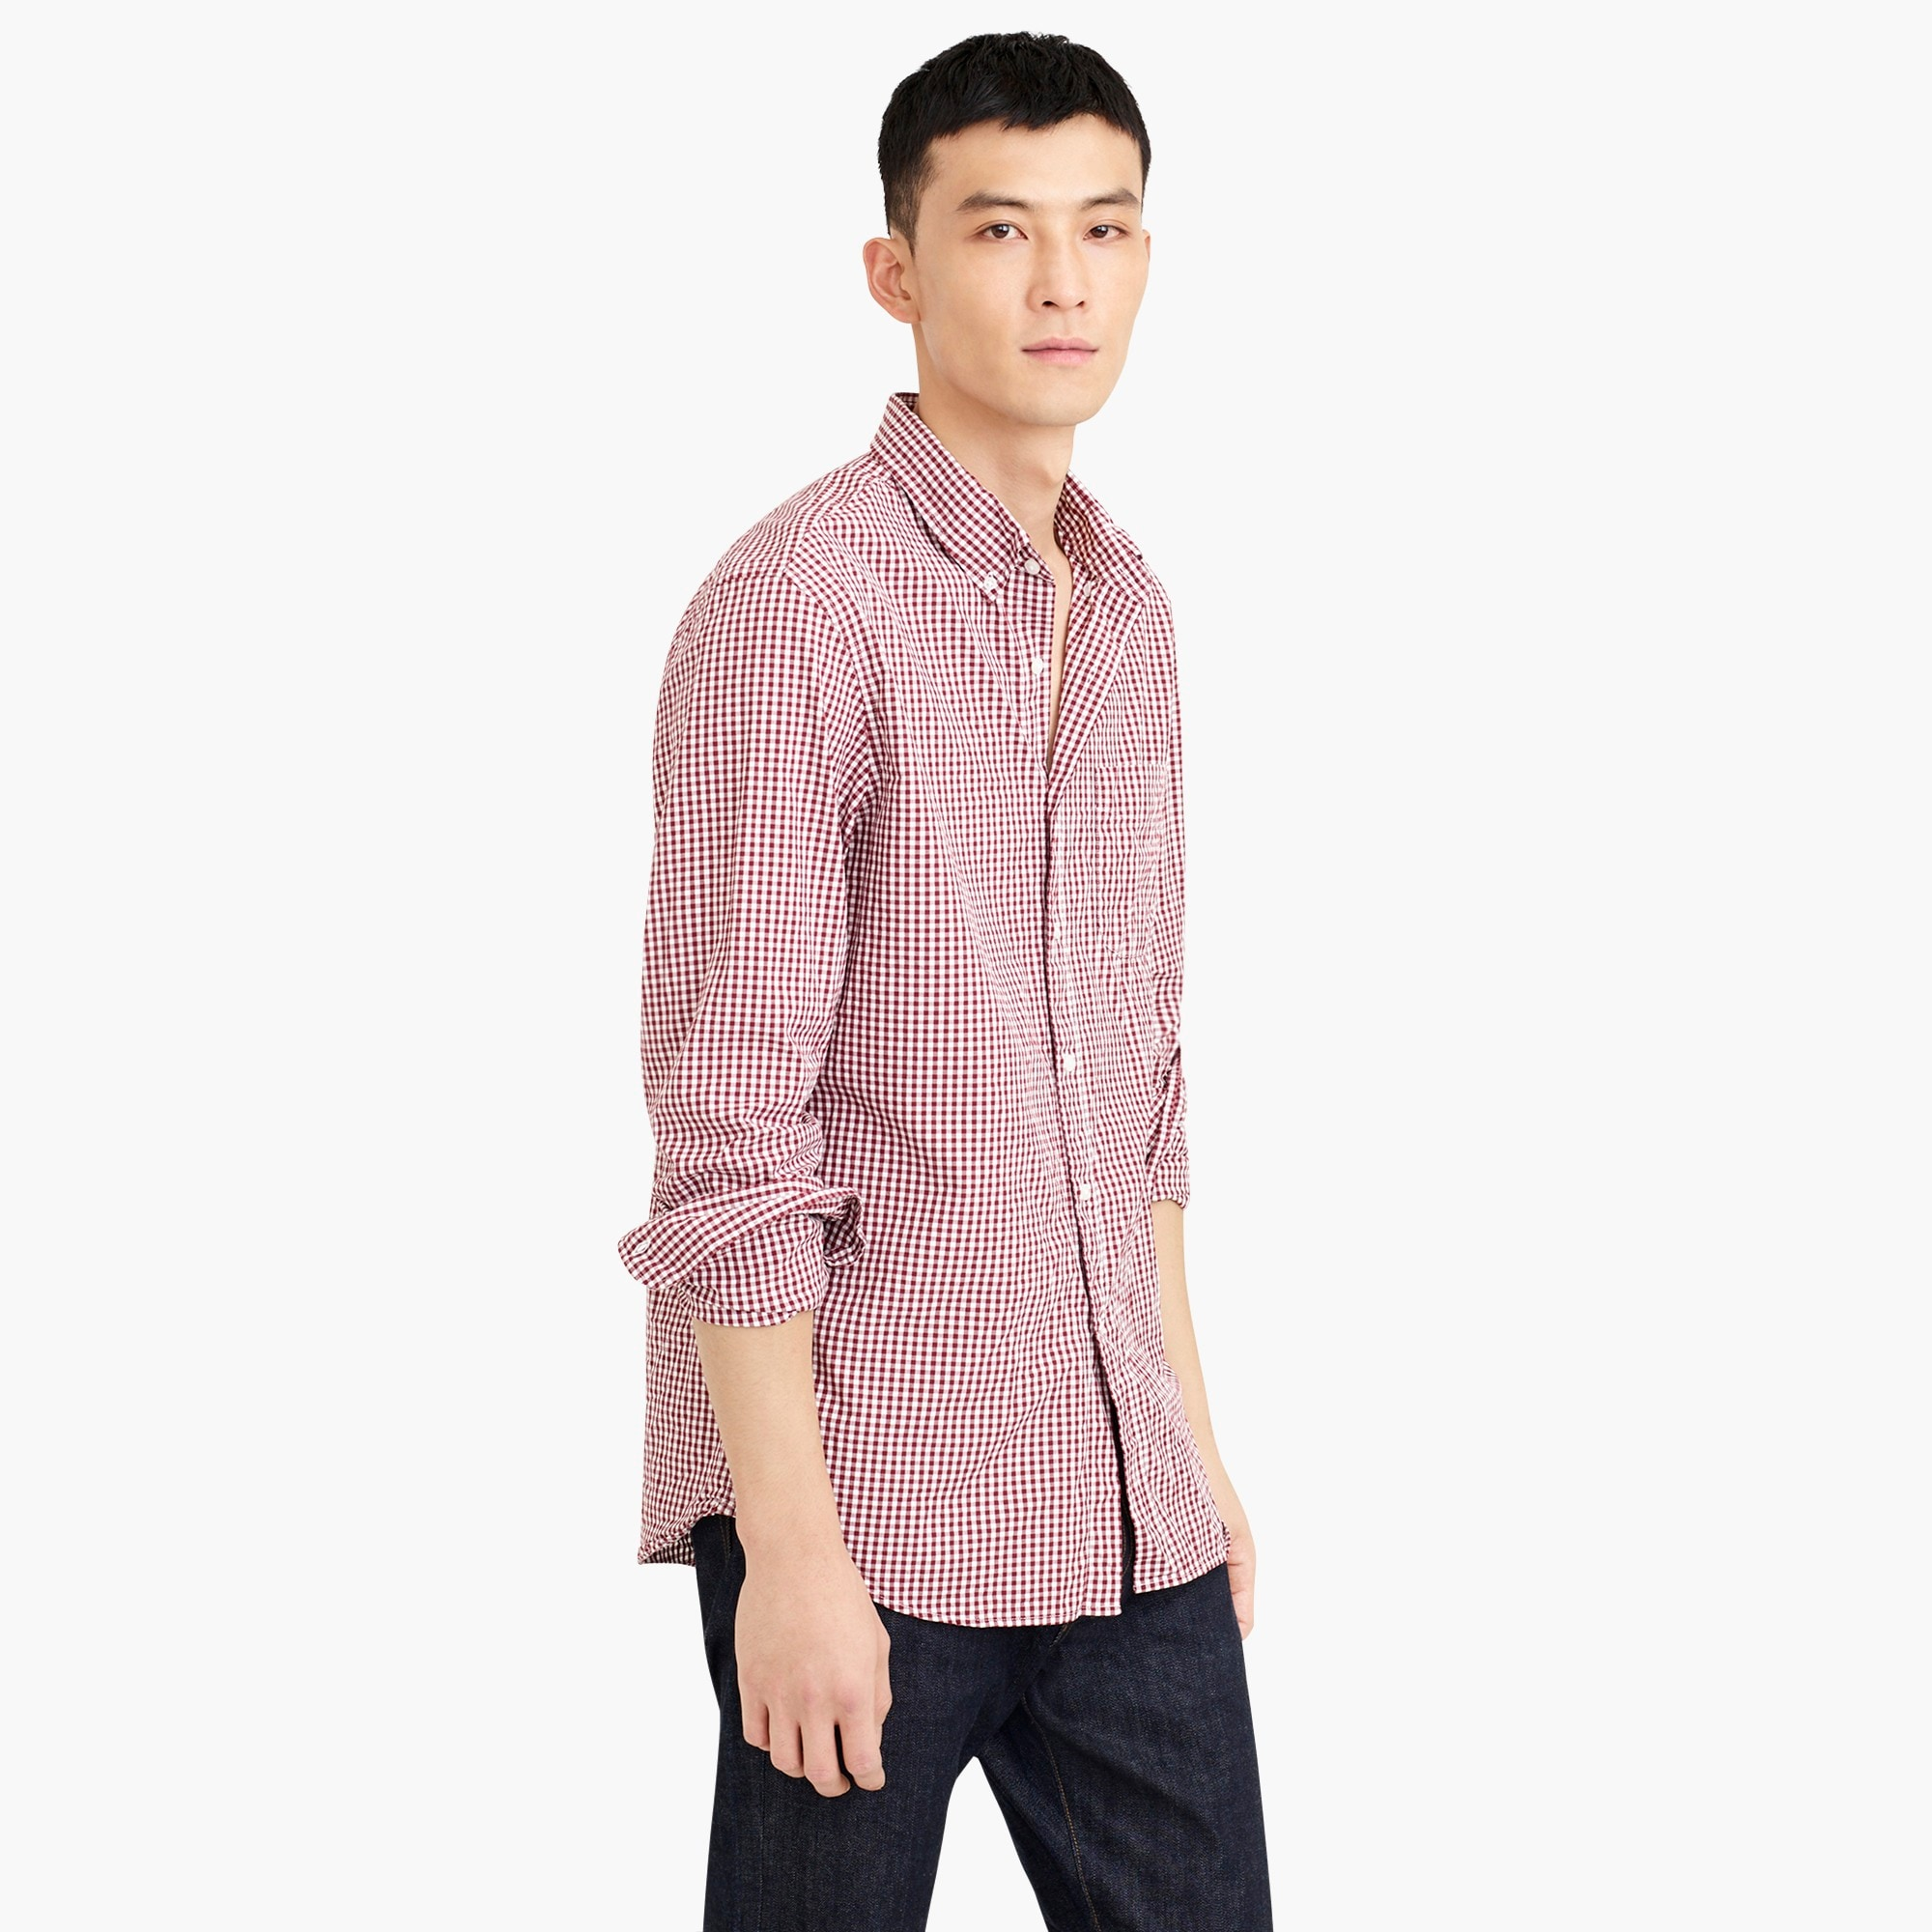 Image 2 for Tall stretch Secret Wash shirt in gingham poplin